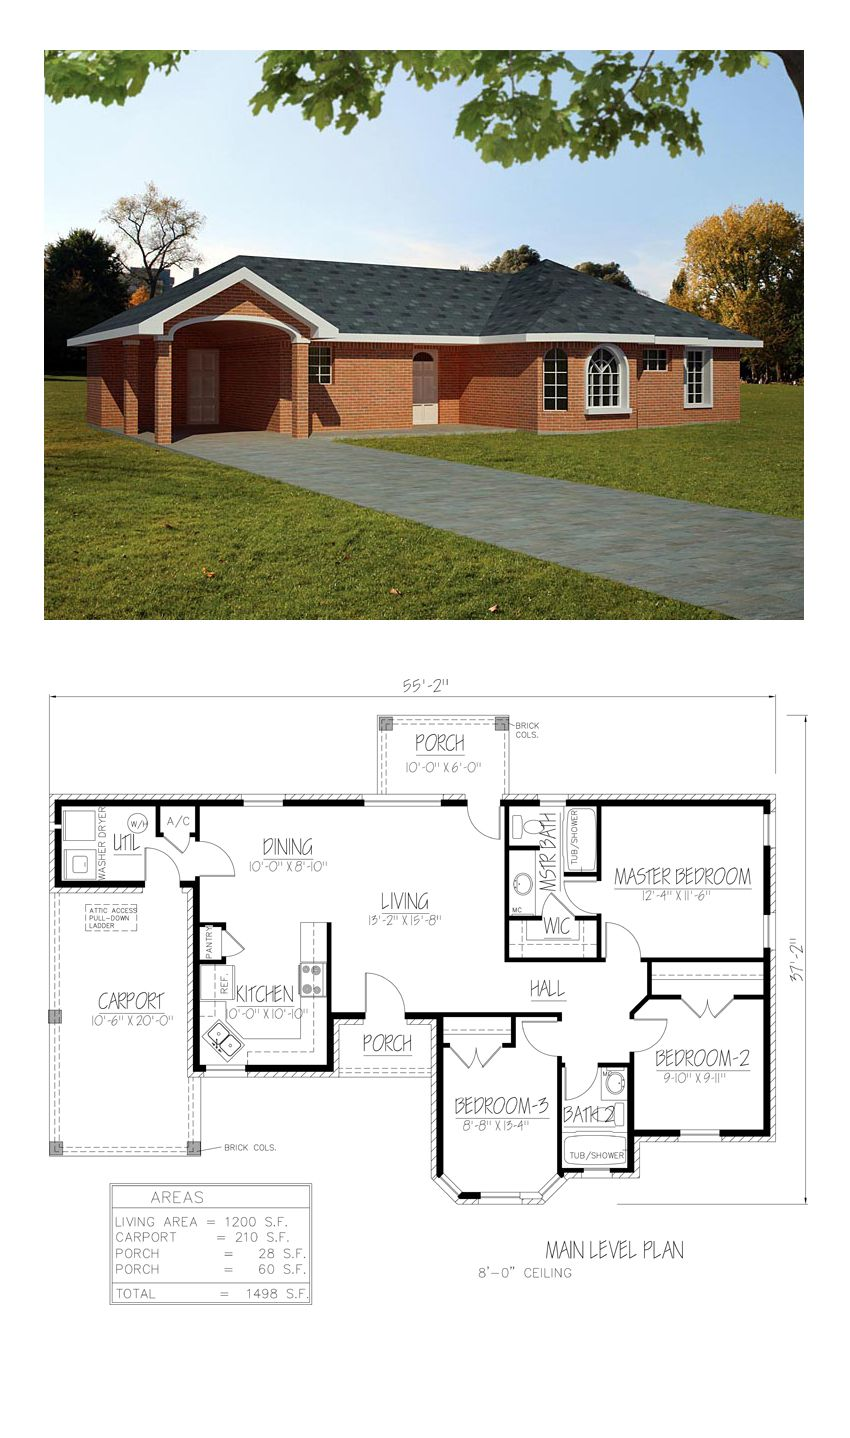 Southwest Style House Plan 71933 With 3 Bed 2 Bath 1 Car Garage Ranch Style House Plans Architectural House Plans Southwest House